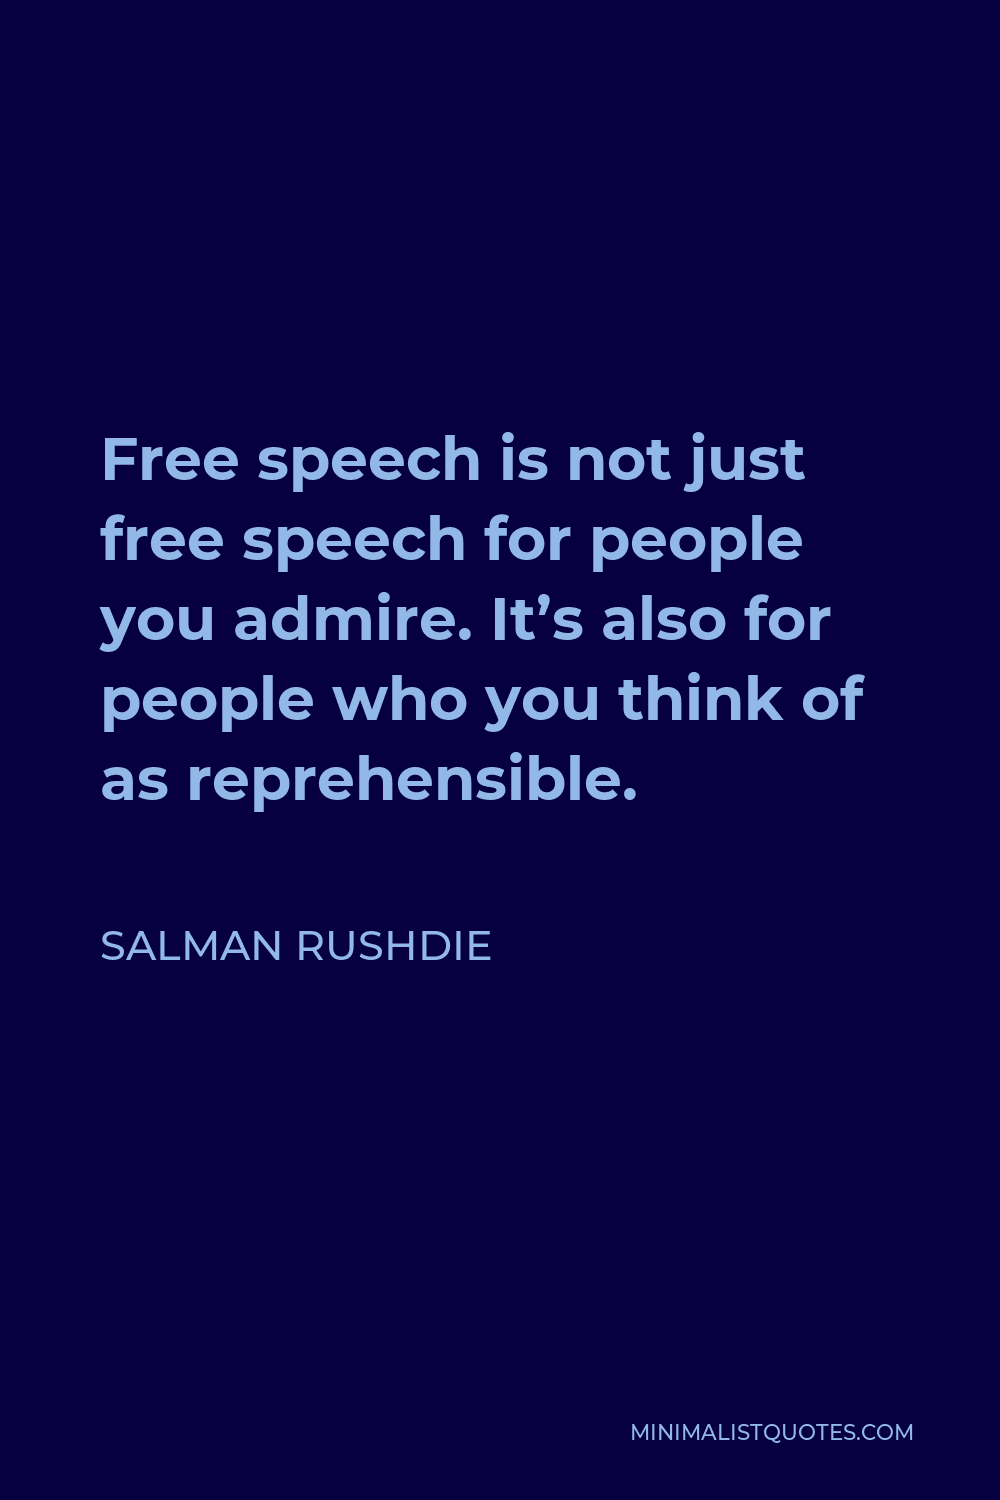 Salman Rushdie Quote - Free speech is not just free speech for people you admire. It's also for people who you think of as reprehensible.